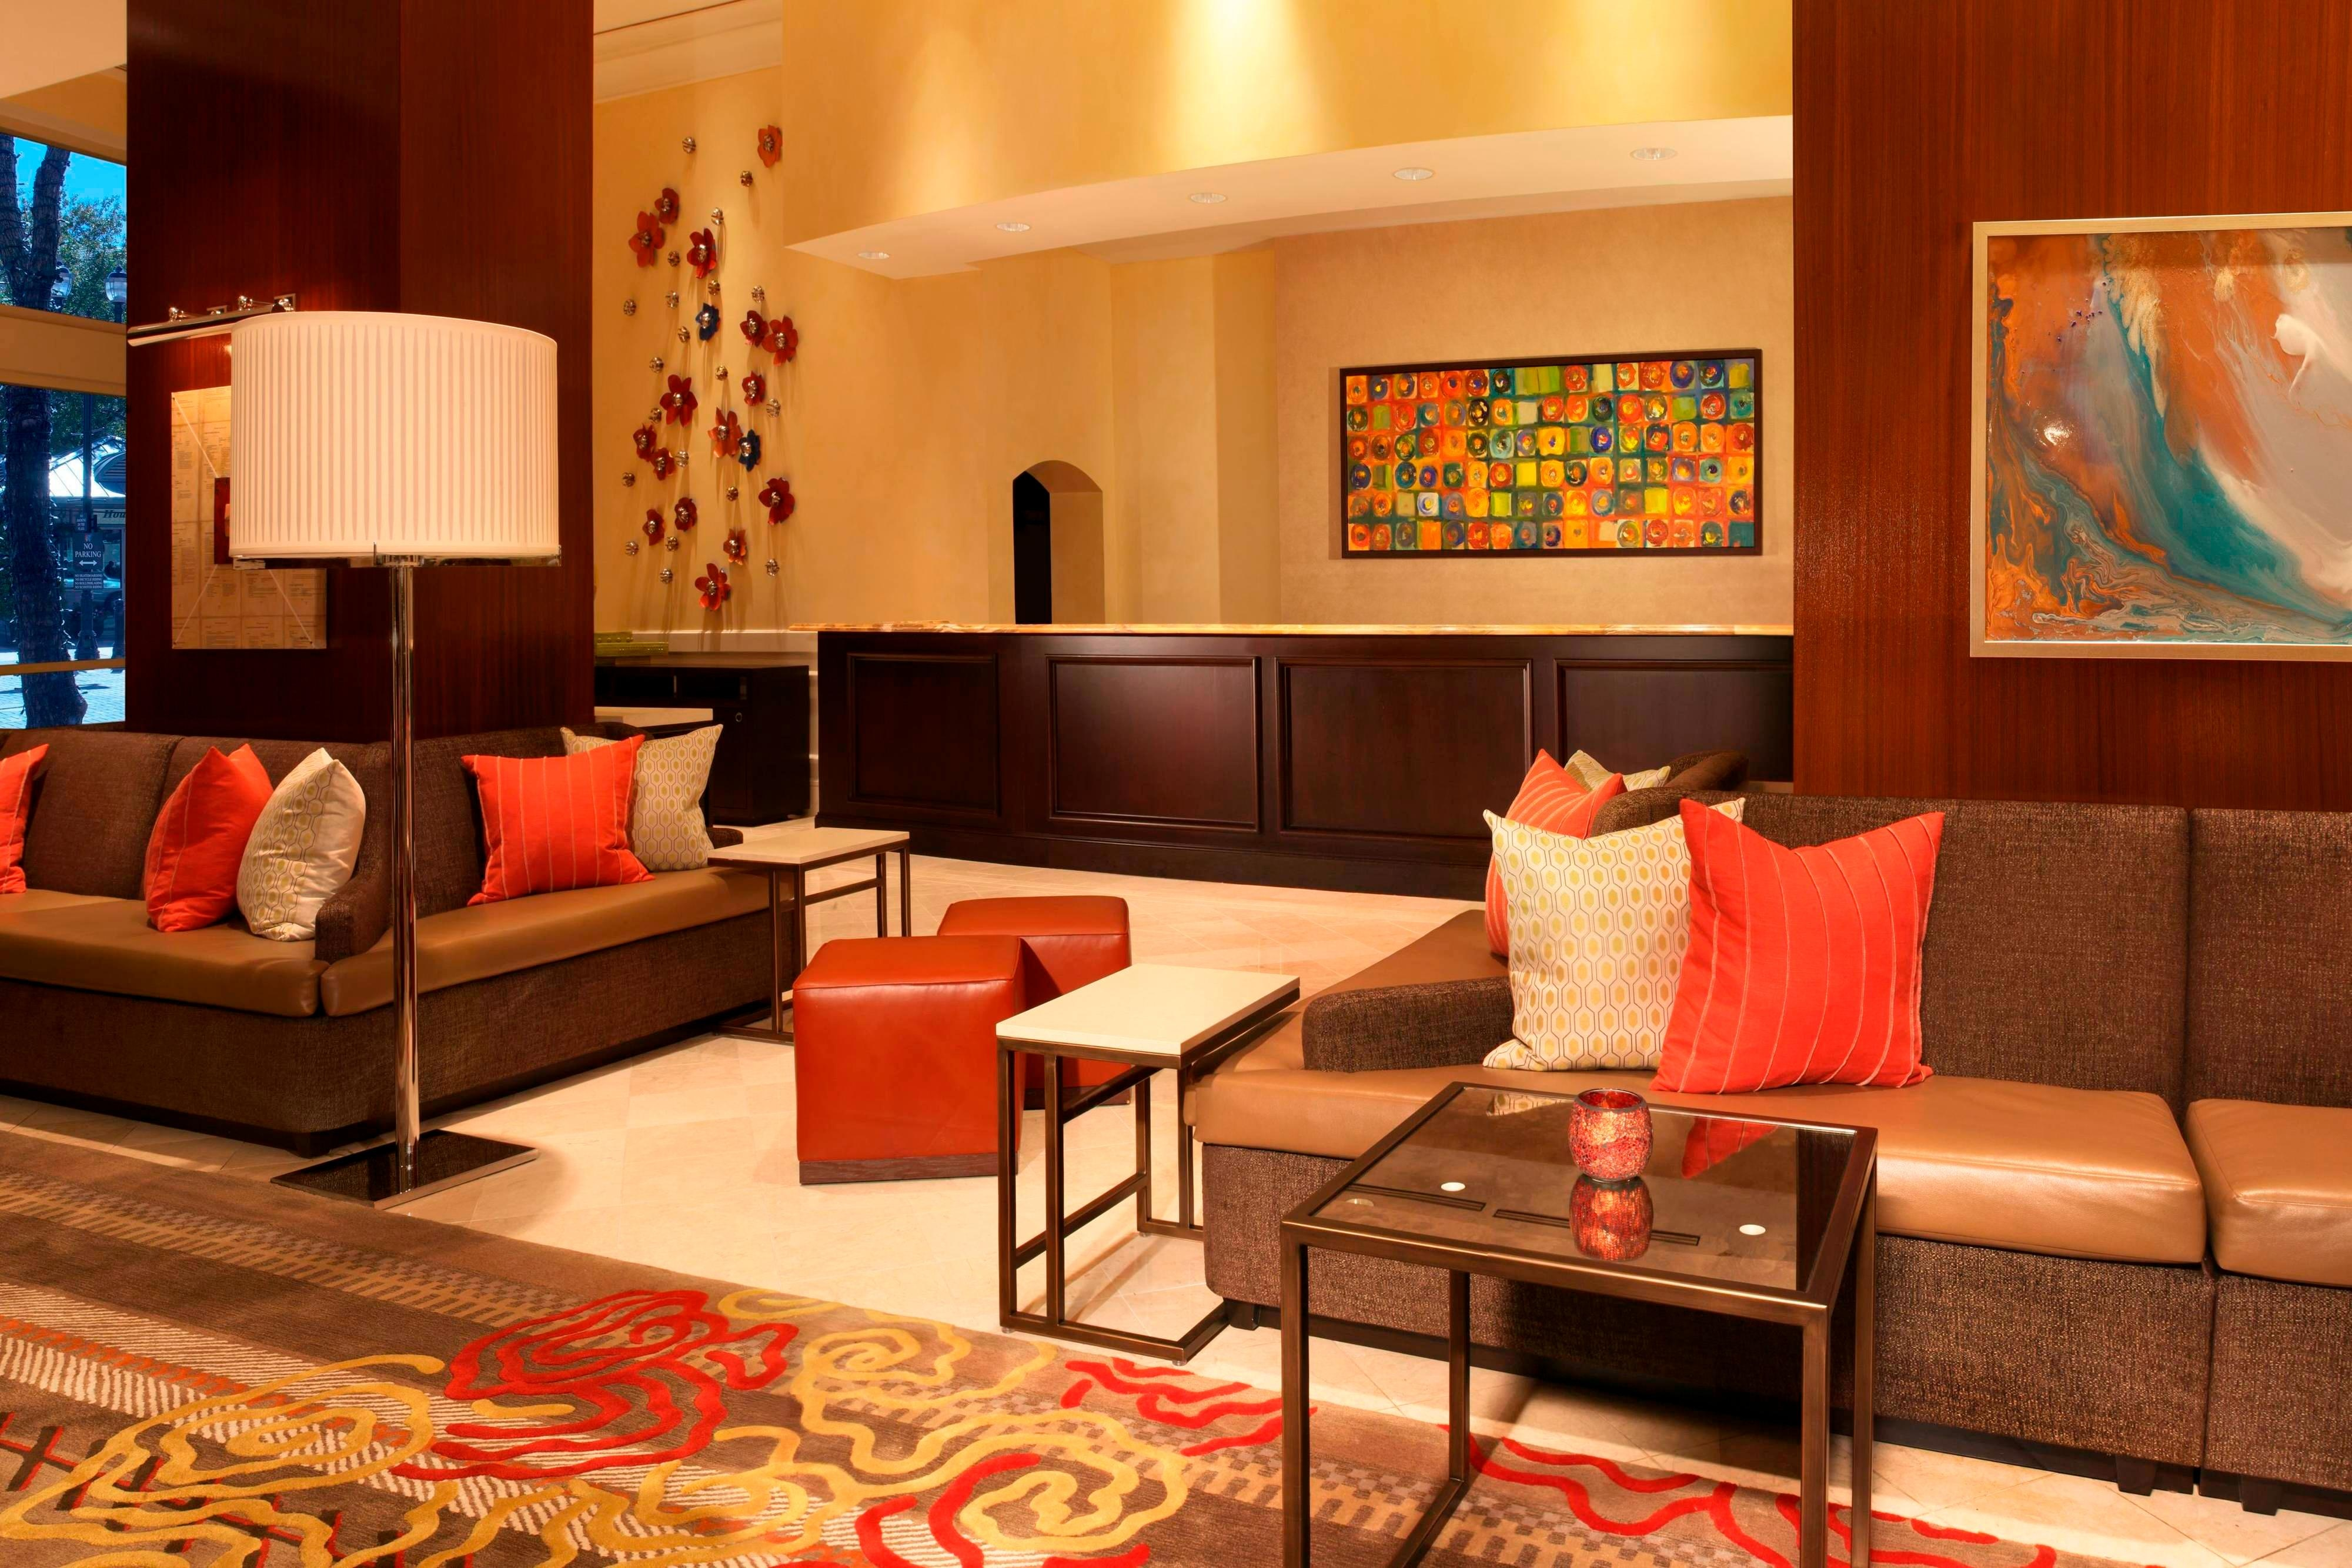 Sugar Land Marriott Front Desk